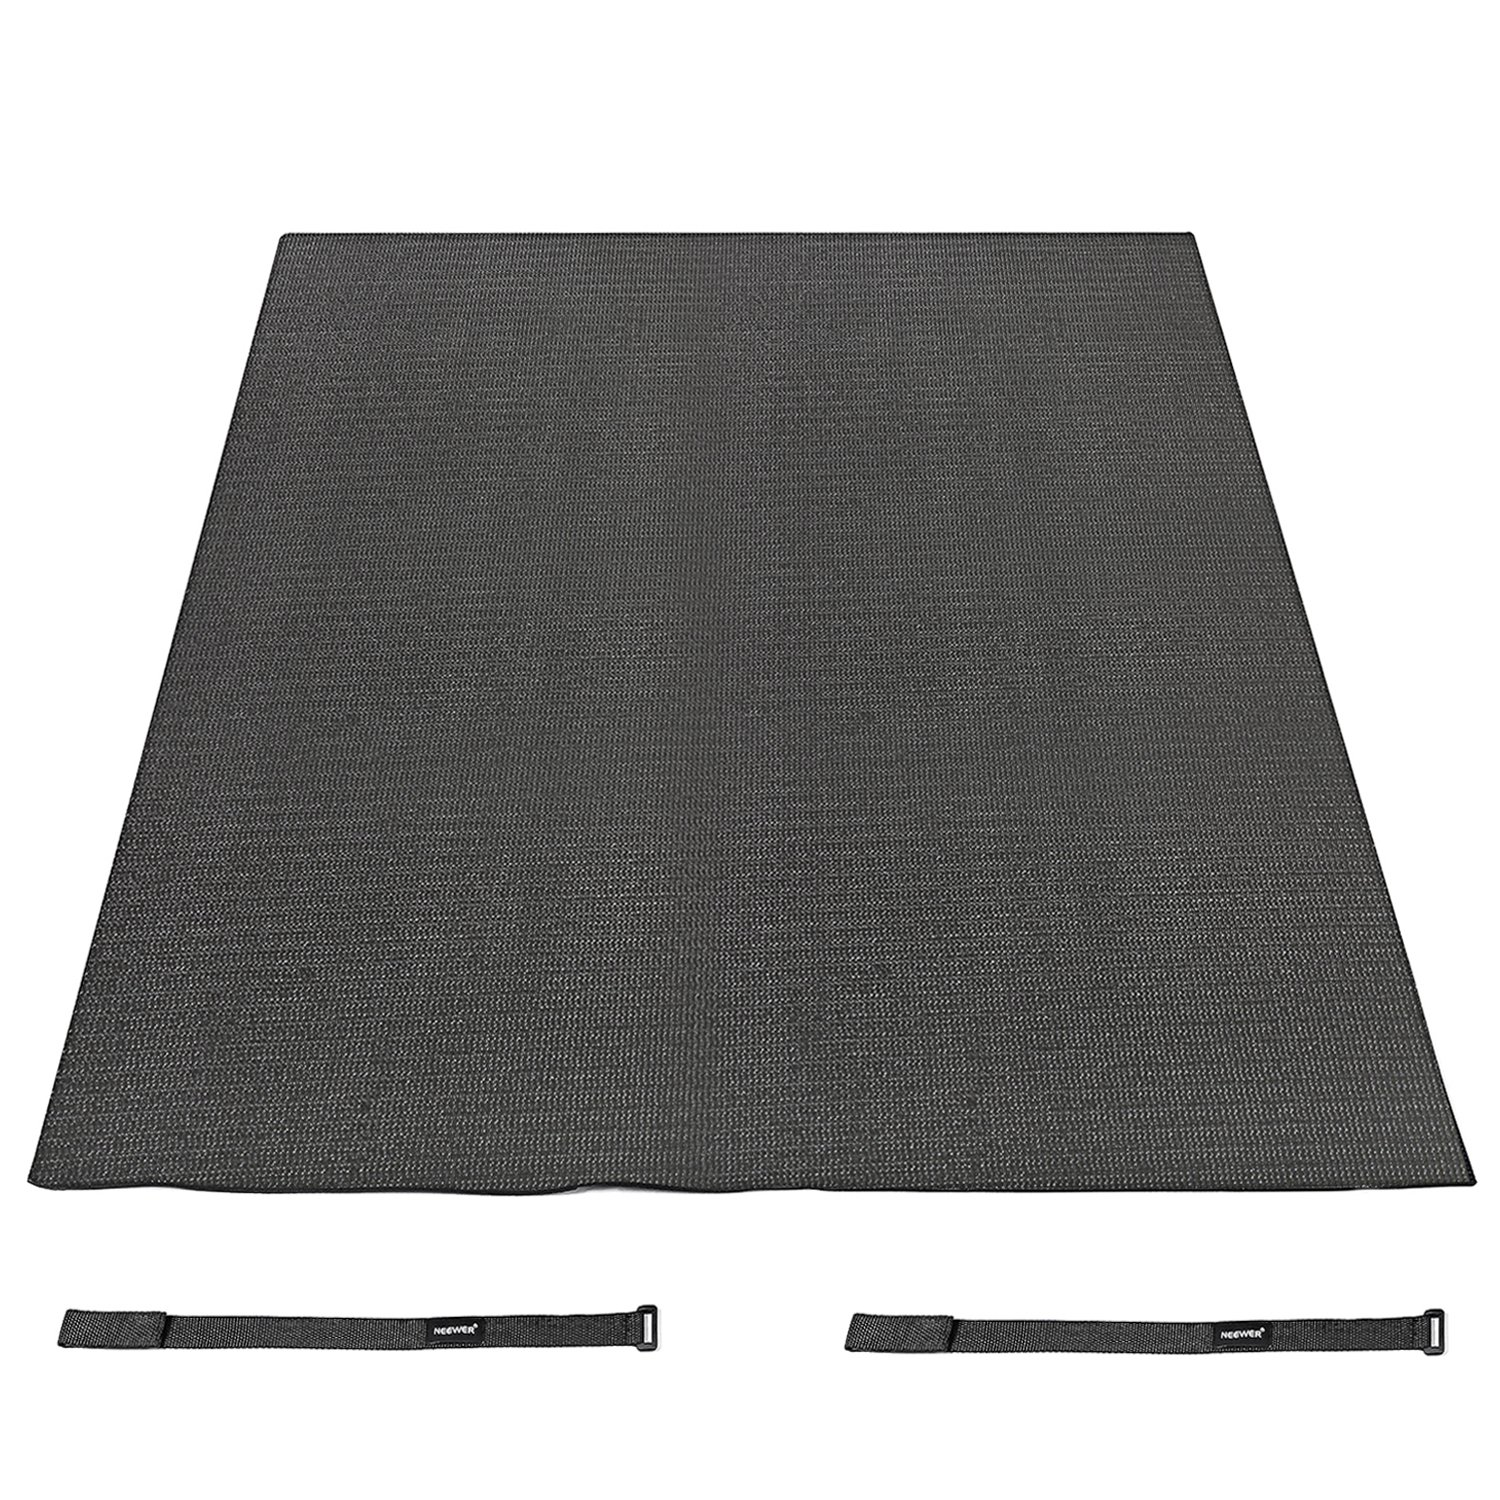 Neewer Black 6 x 4 Feet/1.8 x 1.2M Non Slip Drum Mat with Nylon Carrying Bag for Bass Drum, Snare and Other Core Set Components 40088326